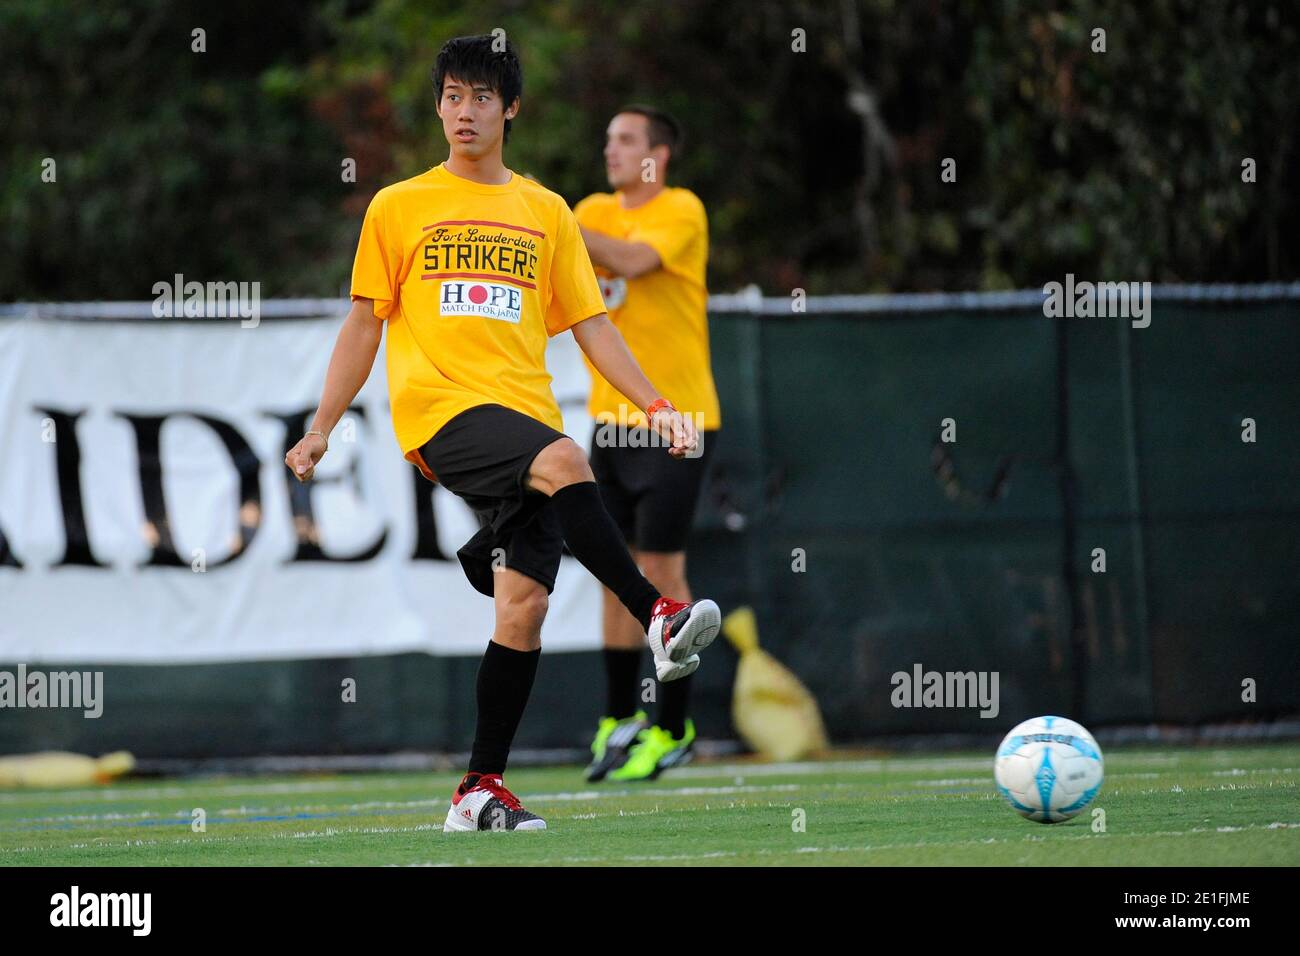 Japan's Kei Nishikori during the Hope Soccer Match for Japan between ATP World Tour Allstars and Fort Lauderdale Strikers at Ranson Everglades School in Miami, FL, USA on March 23, 2011. Photo by Corinne Dubreuil/ABACAPRESS.COM Stock Photo